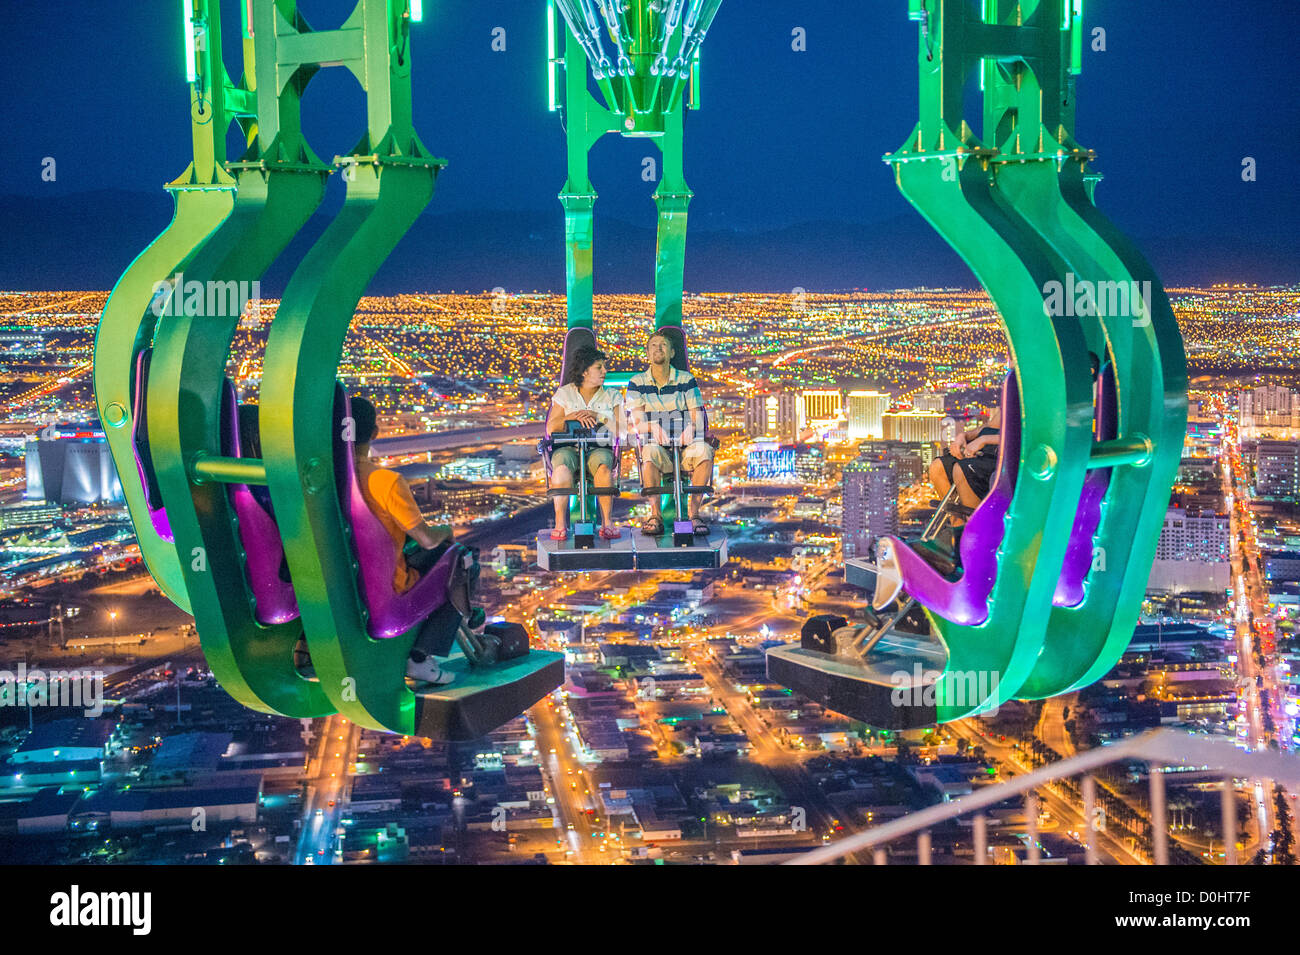 The x-stream thrill ride on the top of Stratosphere tower in Las Vegas. - Stock Image